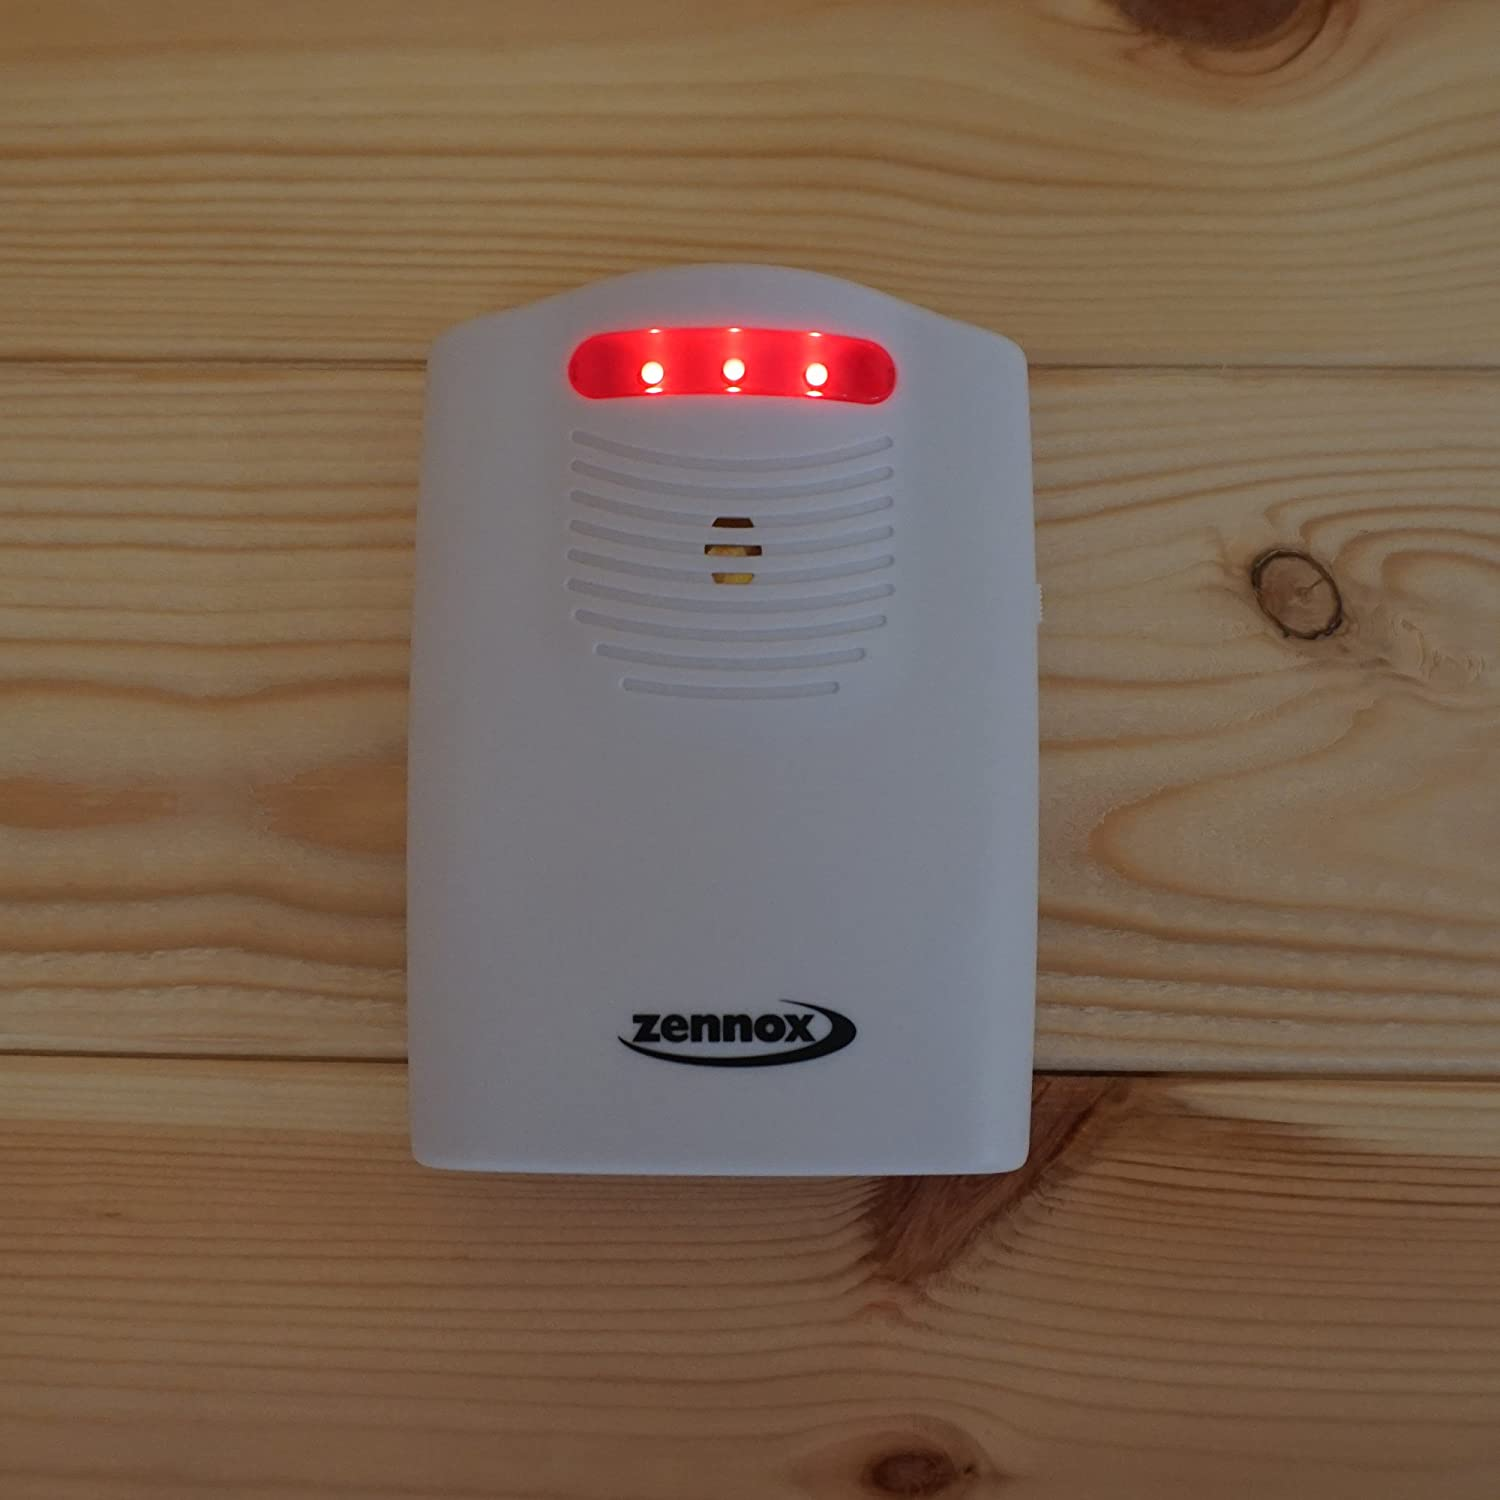 Zennox Wireless Security Shed Alarm With Remote Suitable For Garage Summerhouse Garden Room Log Cabin